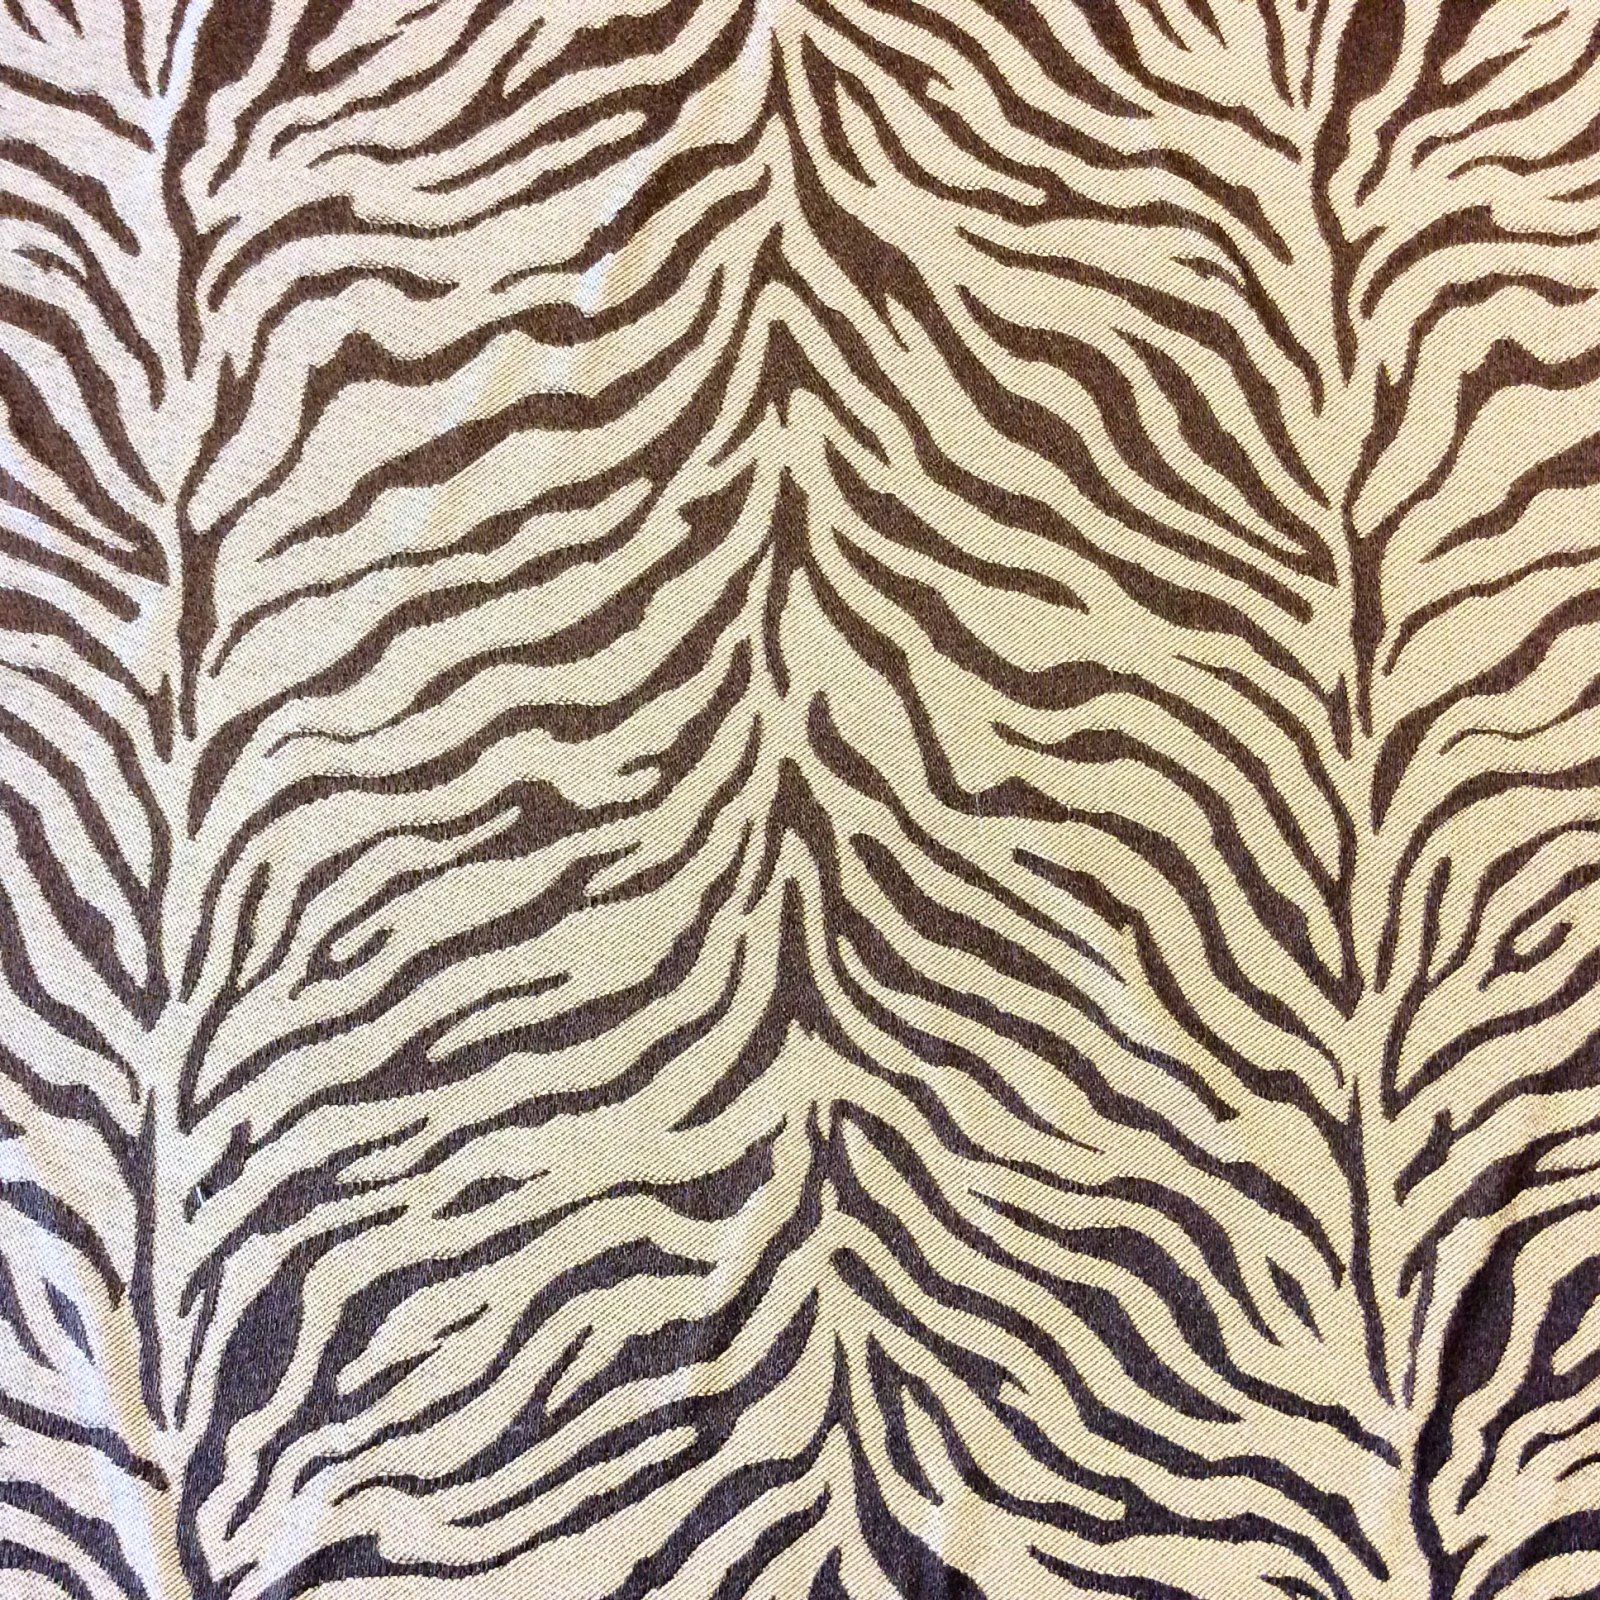 HD39 Brown Zebra Silky Drapery Animal Print Africa Upholstery Home Decor Fabric